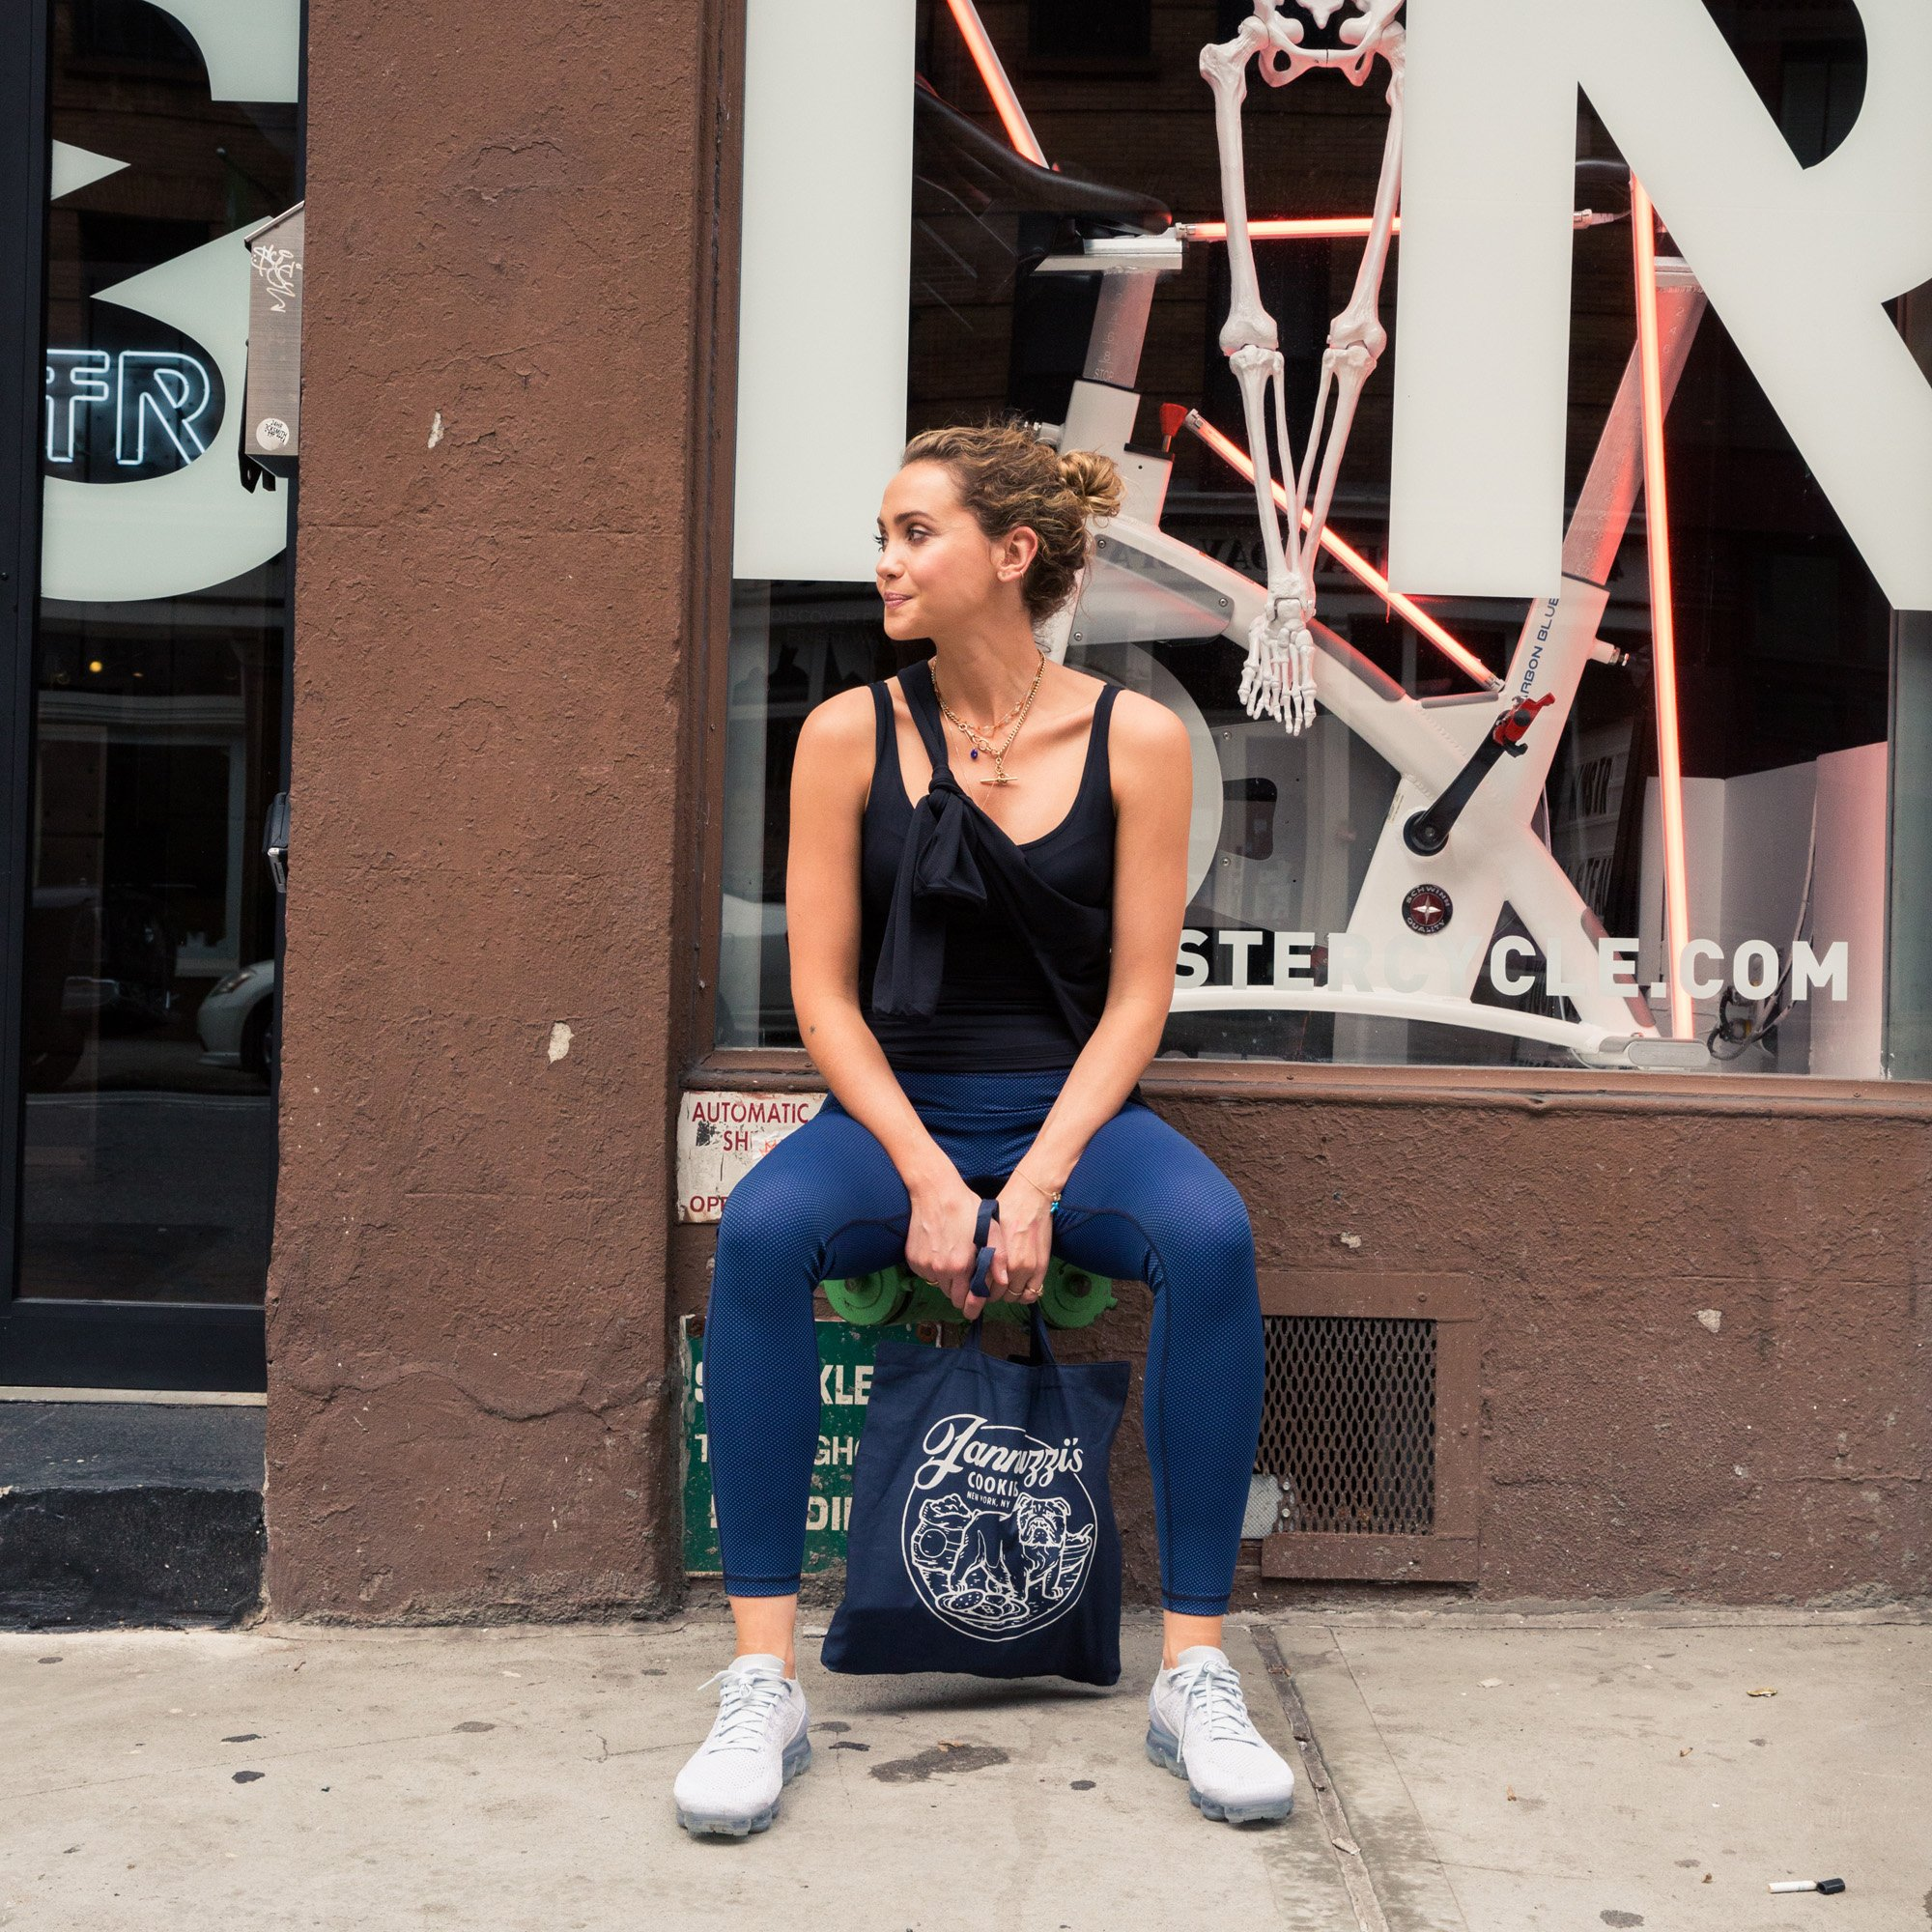 Easy ways to wear your workout gear *anywhere* this summer: https://t.co/yz5zBP7HQK #covcollab @UNIQLOUSA #AIRism https://t.co/0SsORYGm8H